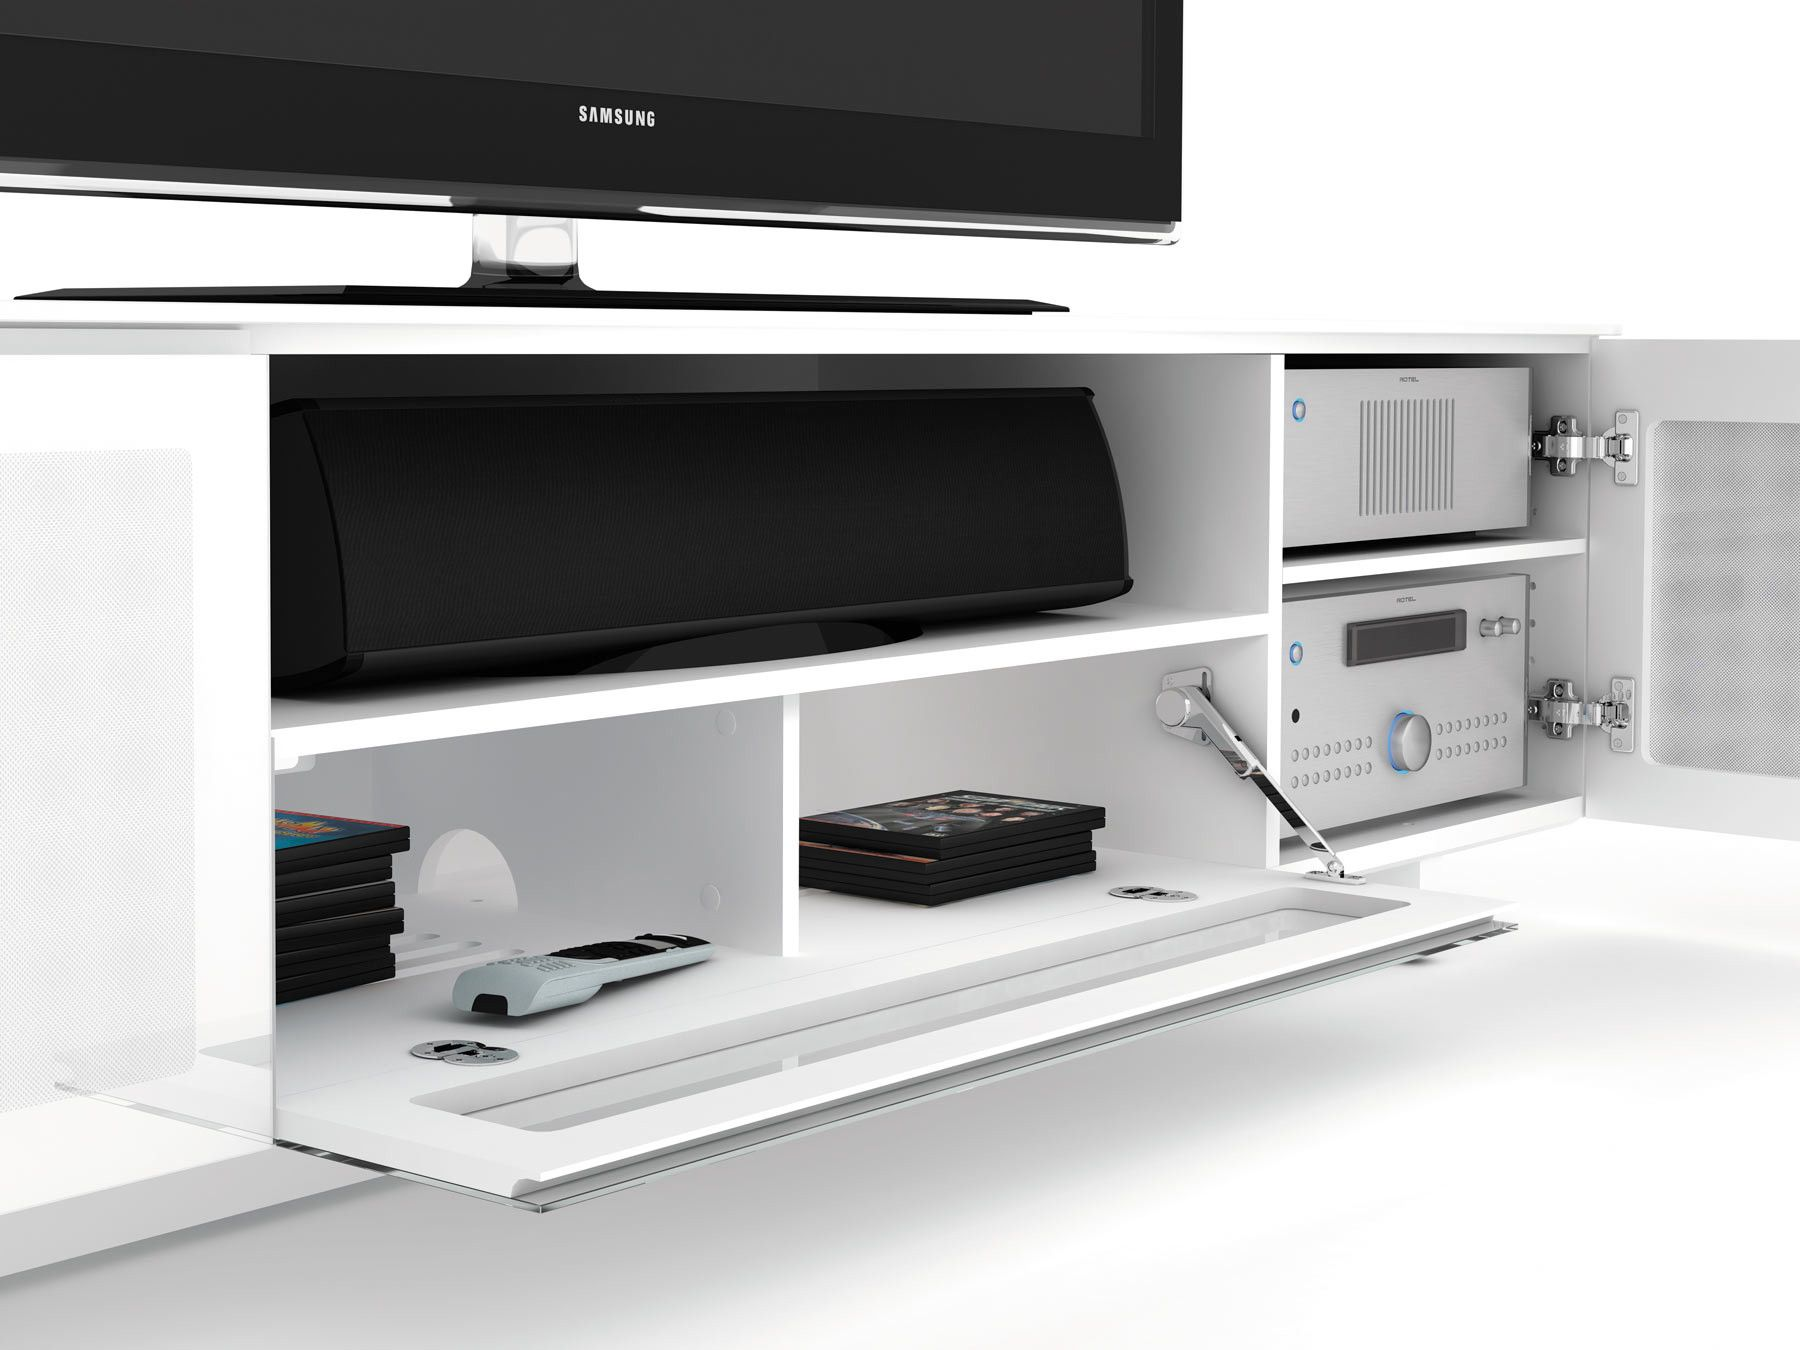 Hinges Speaker Vents See Through Mesh Slim Tv Stand Tv Stand